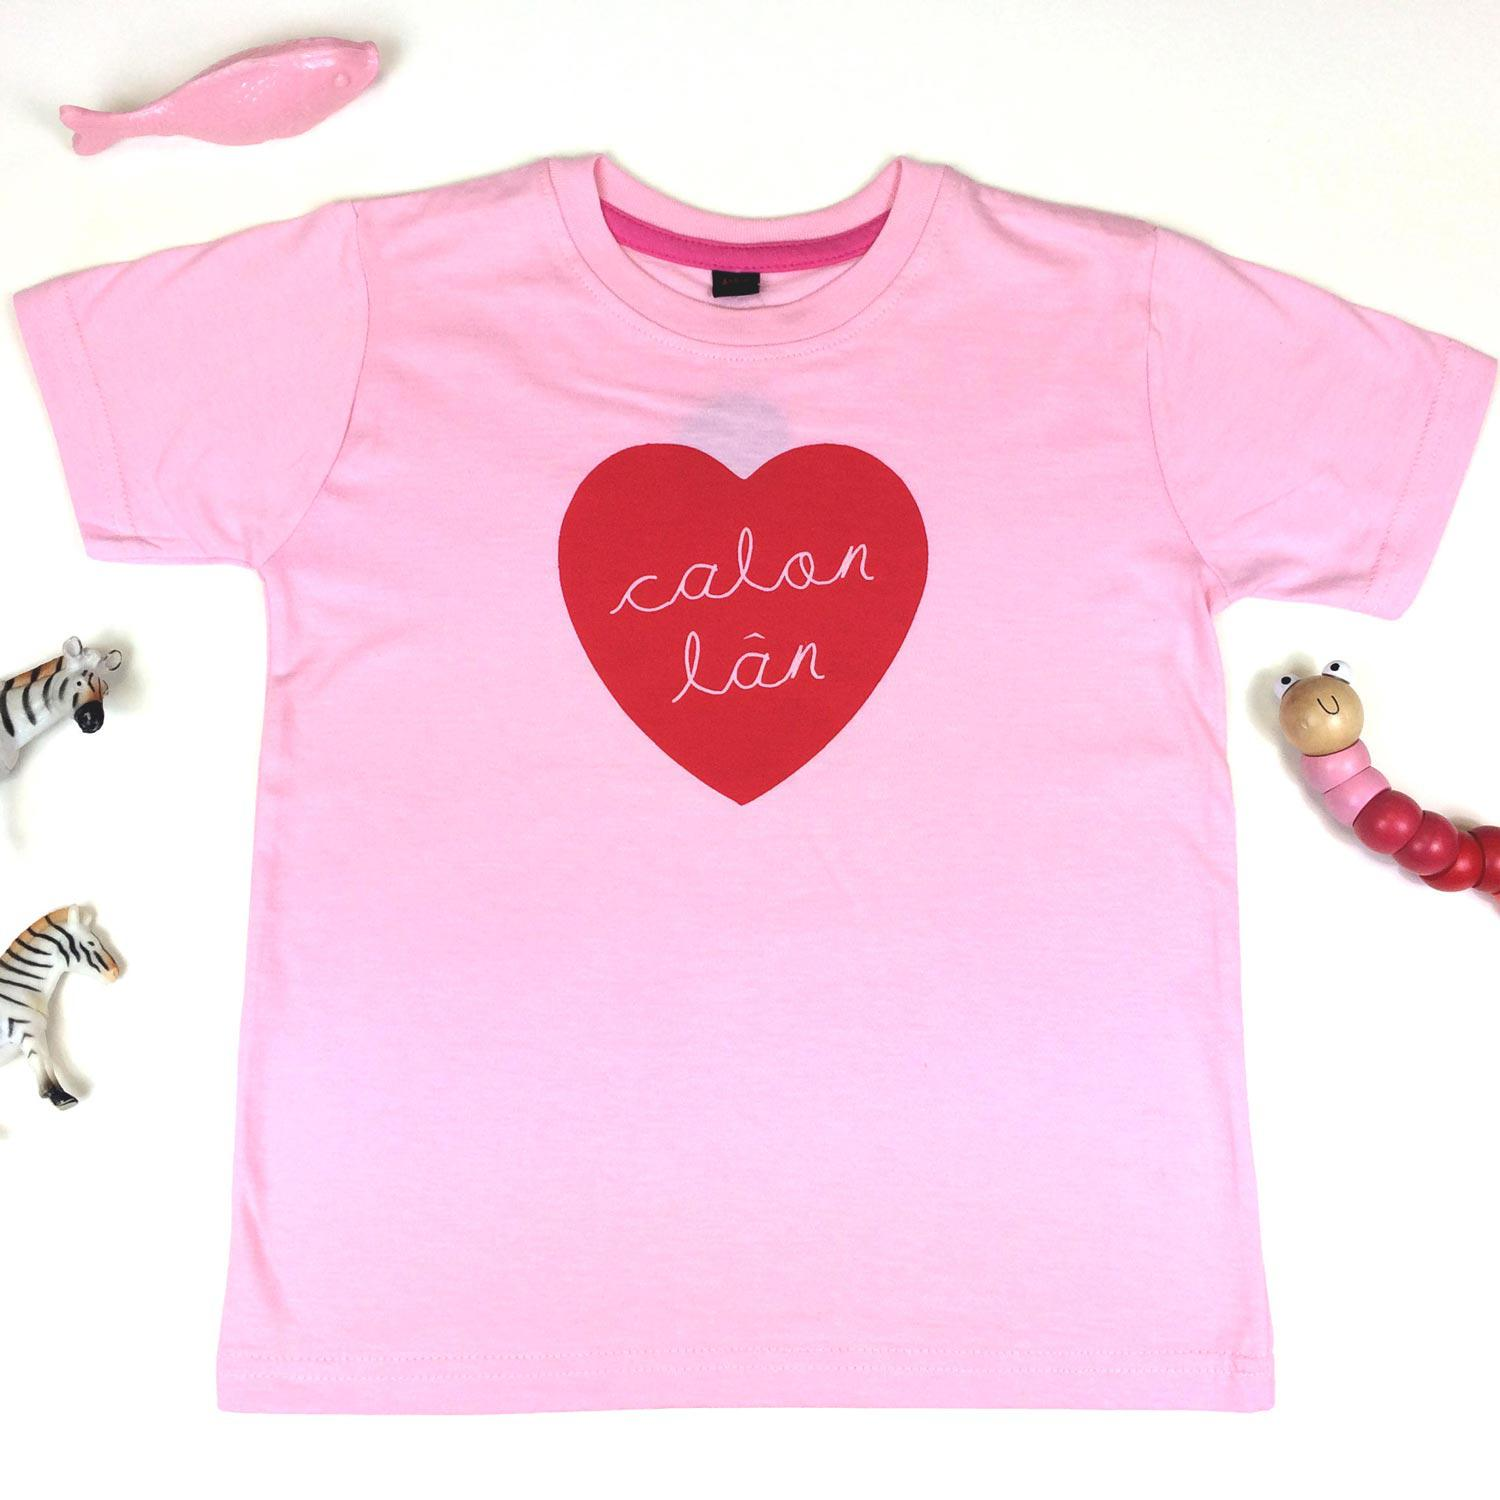 T-shirt - Toddler / Kids - Calon Lan - Pink-The Welsh Gift Shop